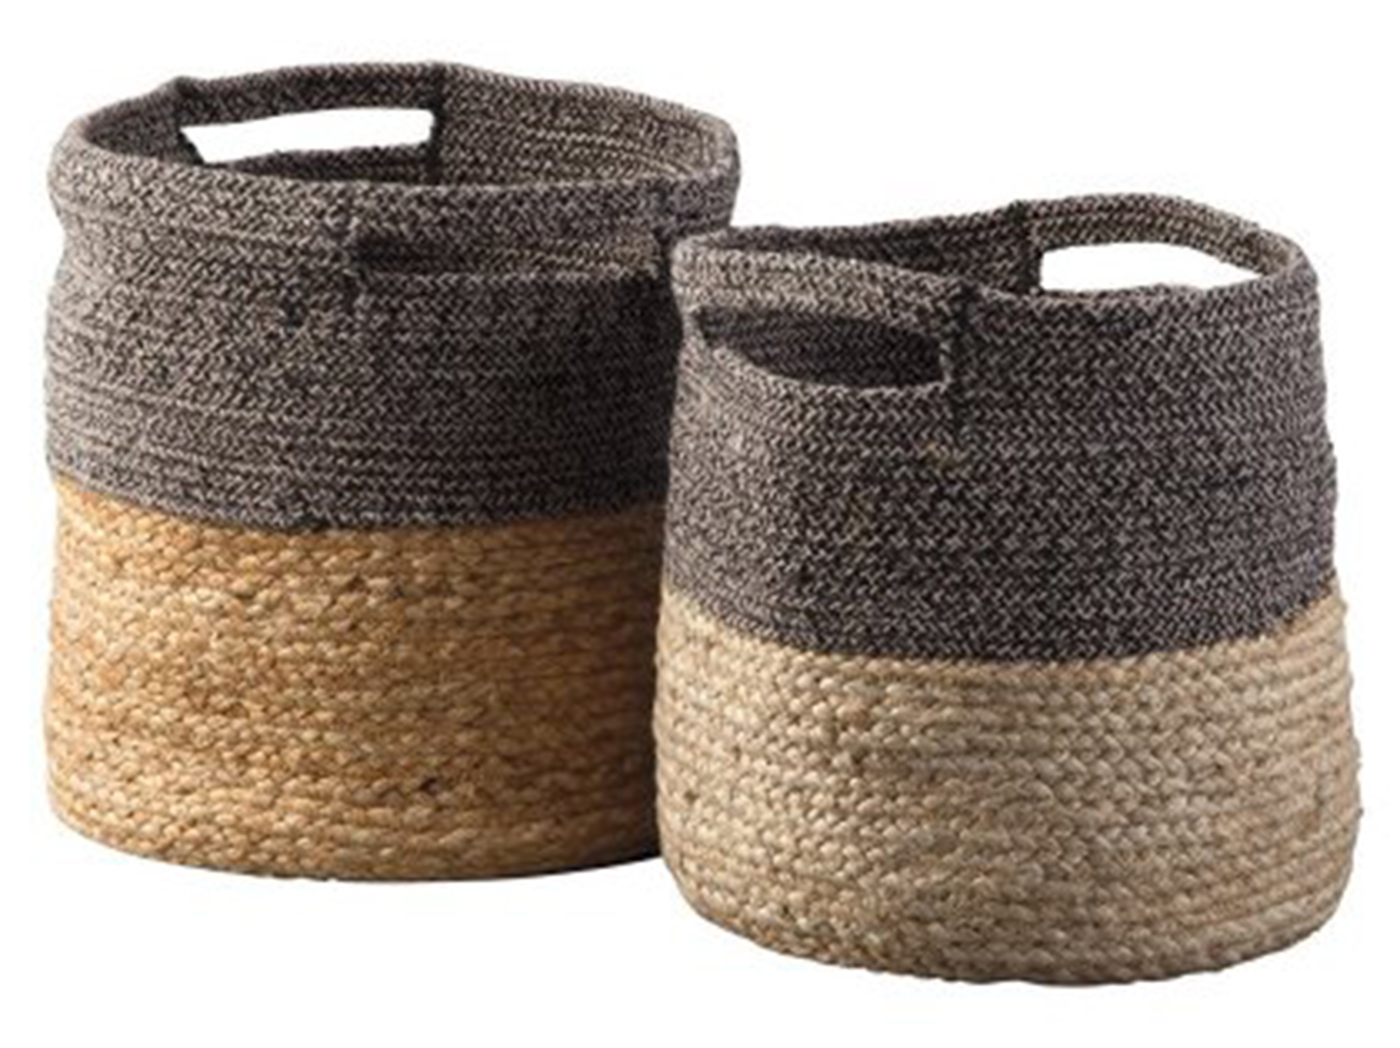 "Set of 2 Natural & Black Baskets 11-13""W x 12-13""H"